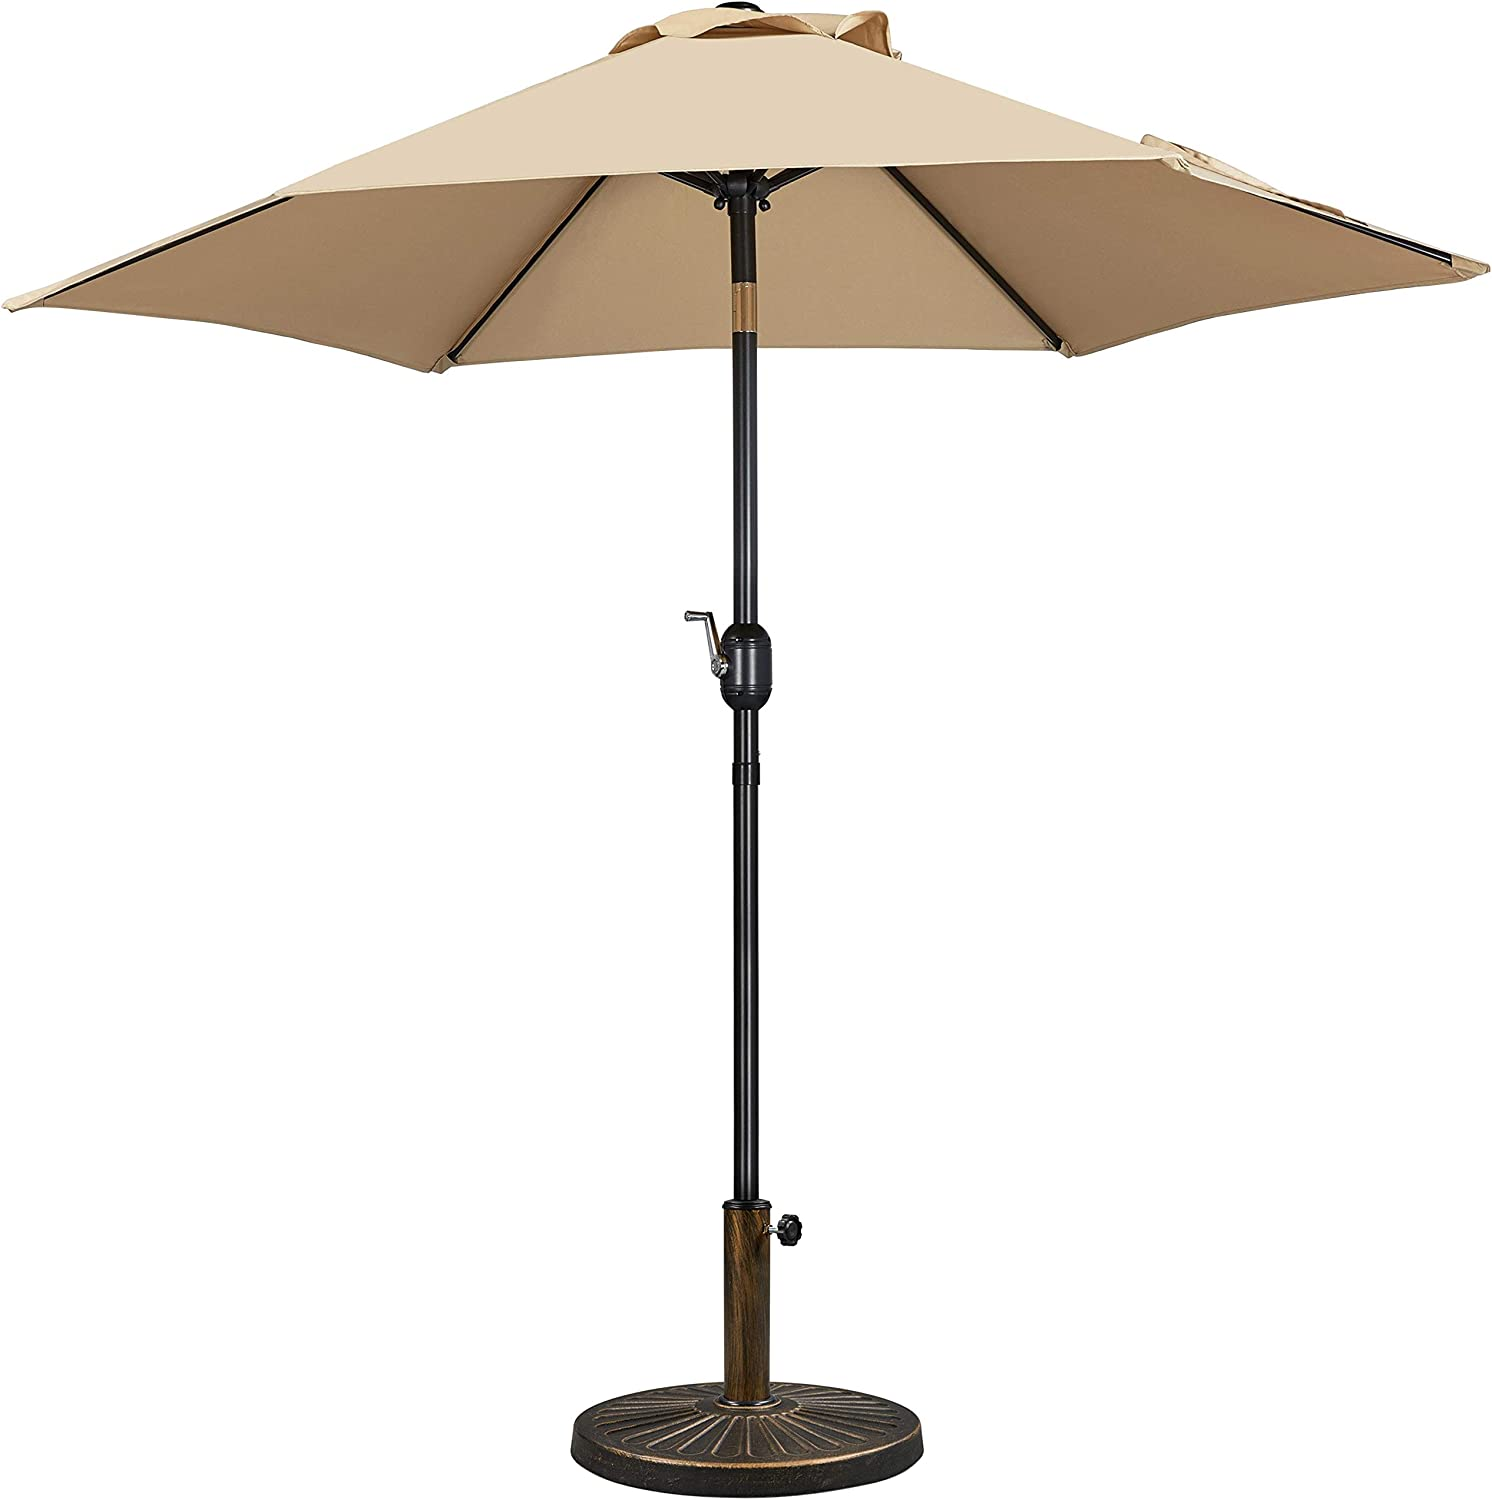 Yaheetech 7.5/9FT Garden Table Umbrella with 22lbs Base Stand, Patio Market Umbrella with Push Button Tilt,Crank and 8 Sturdy Ribs, Aluminum Outdoor Patio Umbrella Base Included Heavy Duty